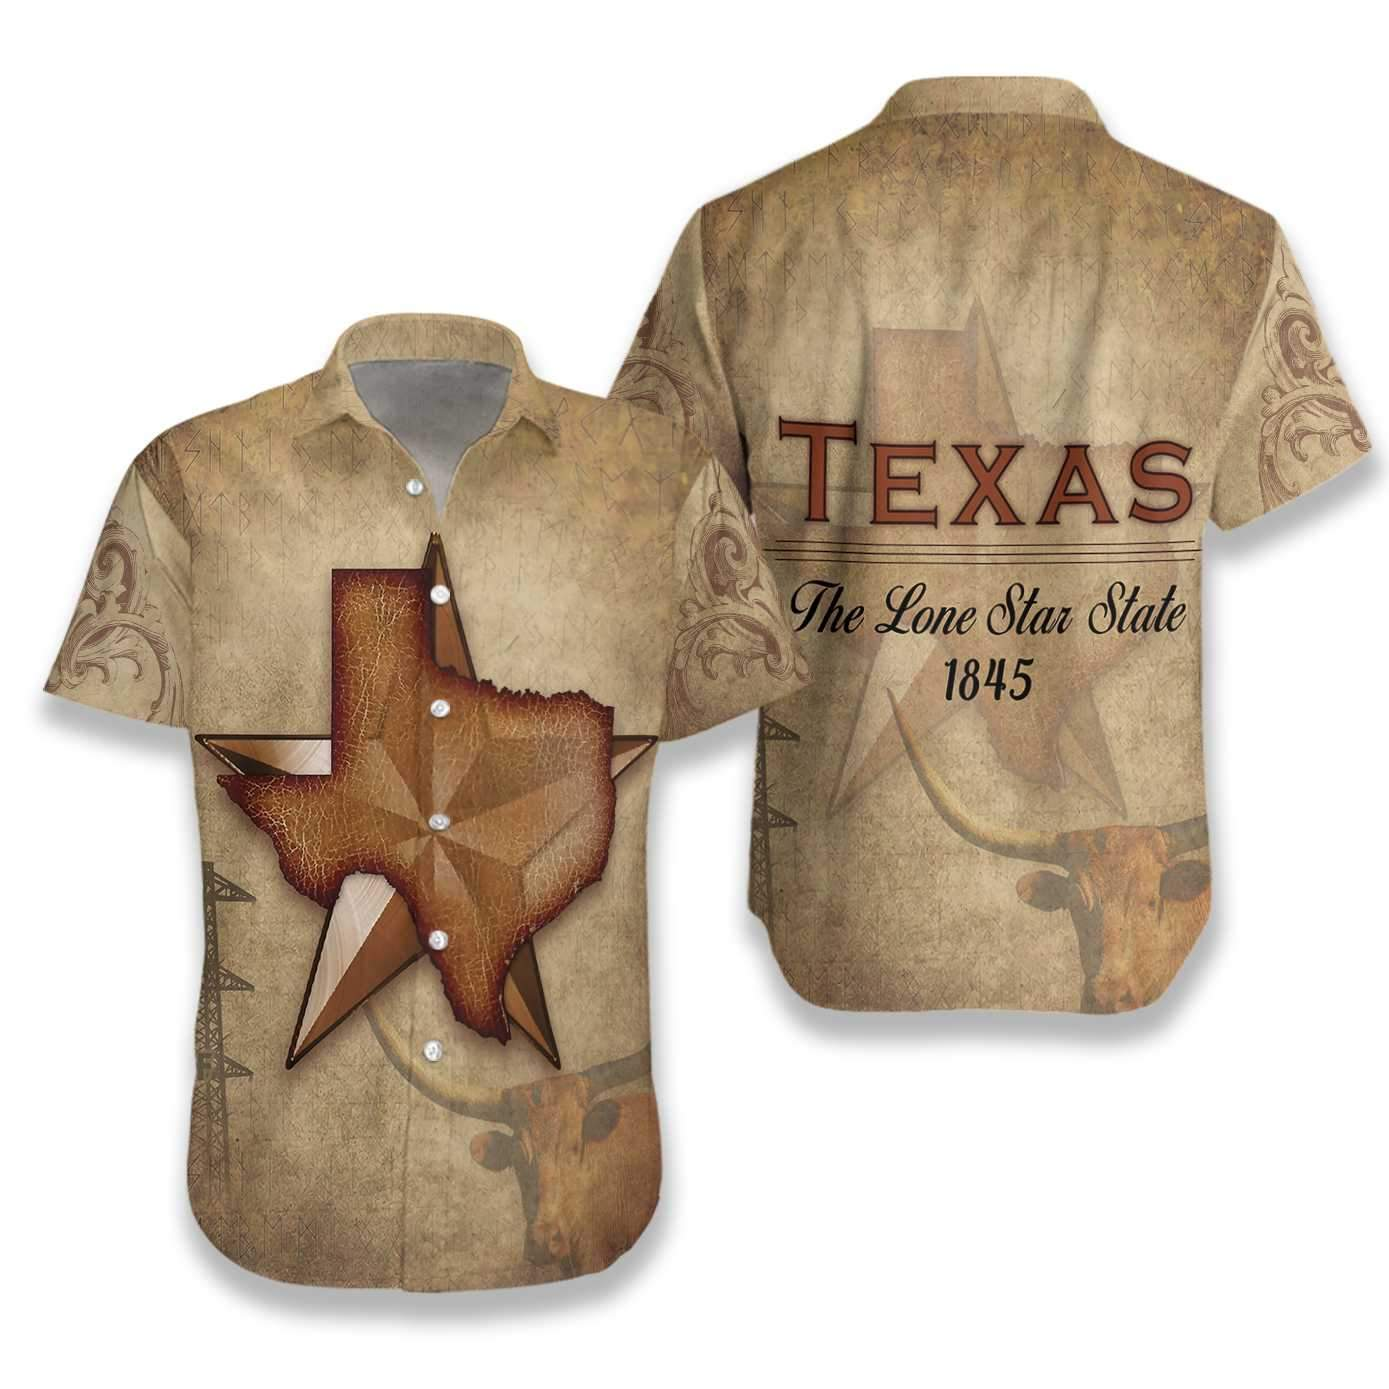 Texas The Lone Star State EZ15 3011 Hawaiian Shirt